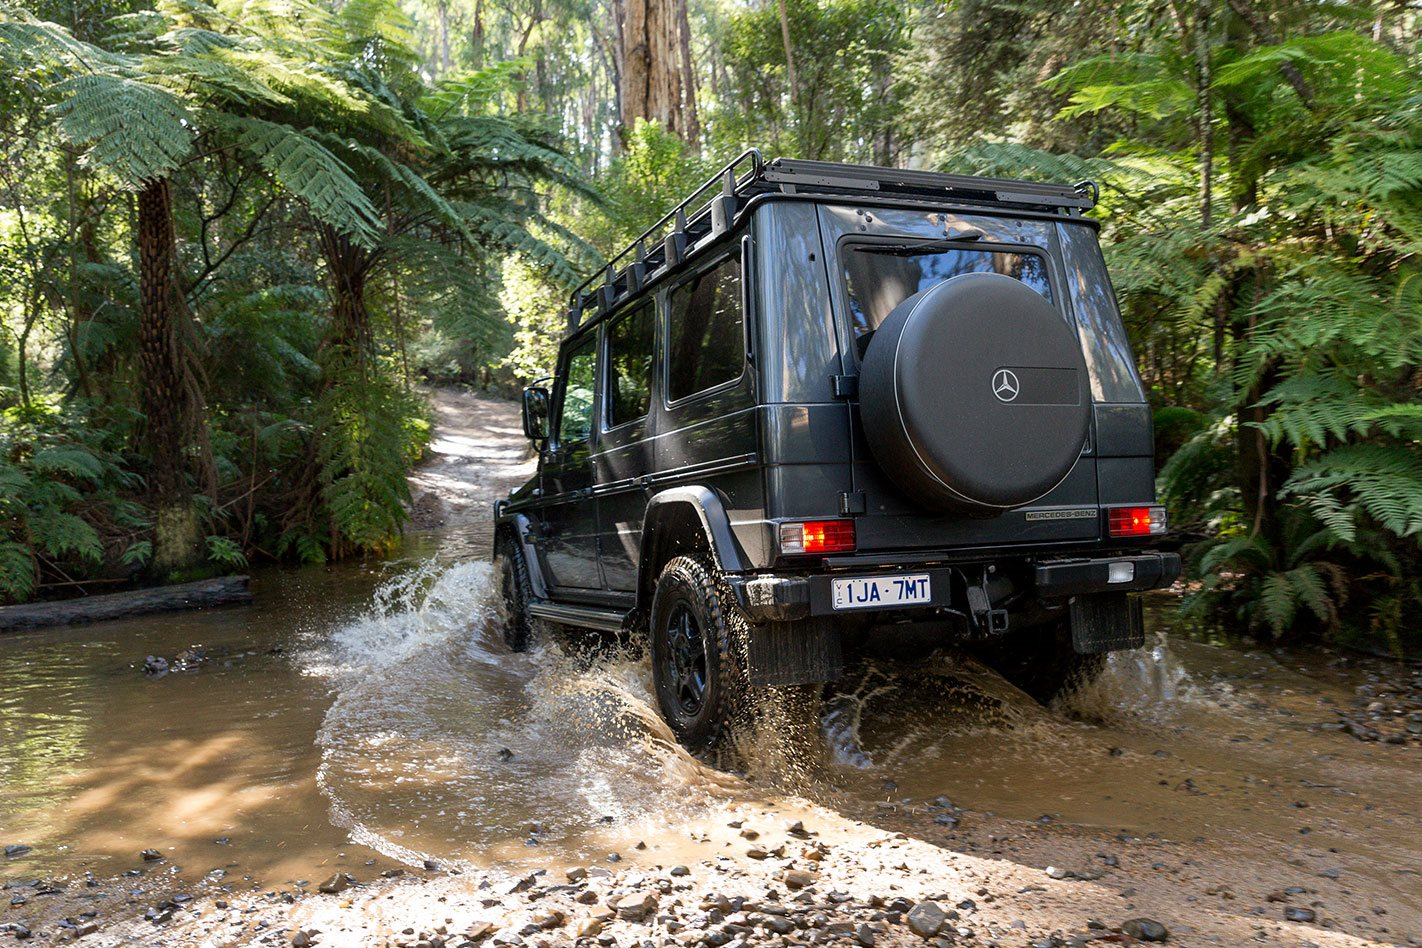 2017 mercedes benz g300 cdi review 4x4 australia for Mercedes benz g300 for sale